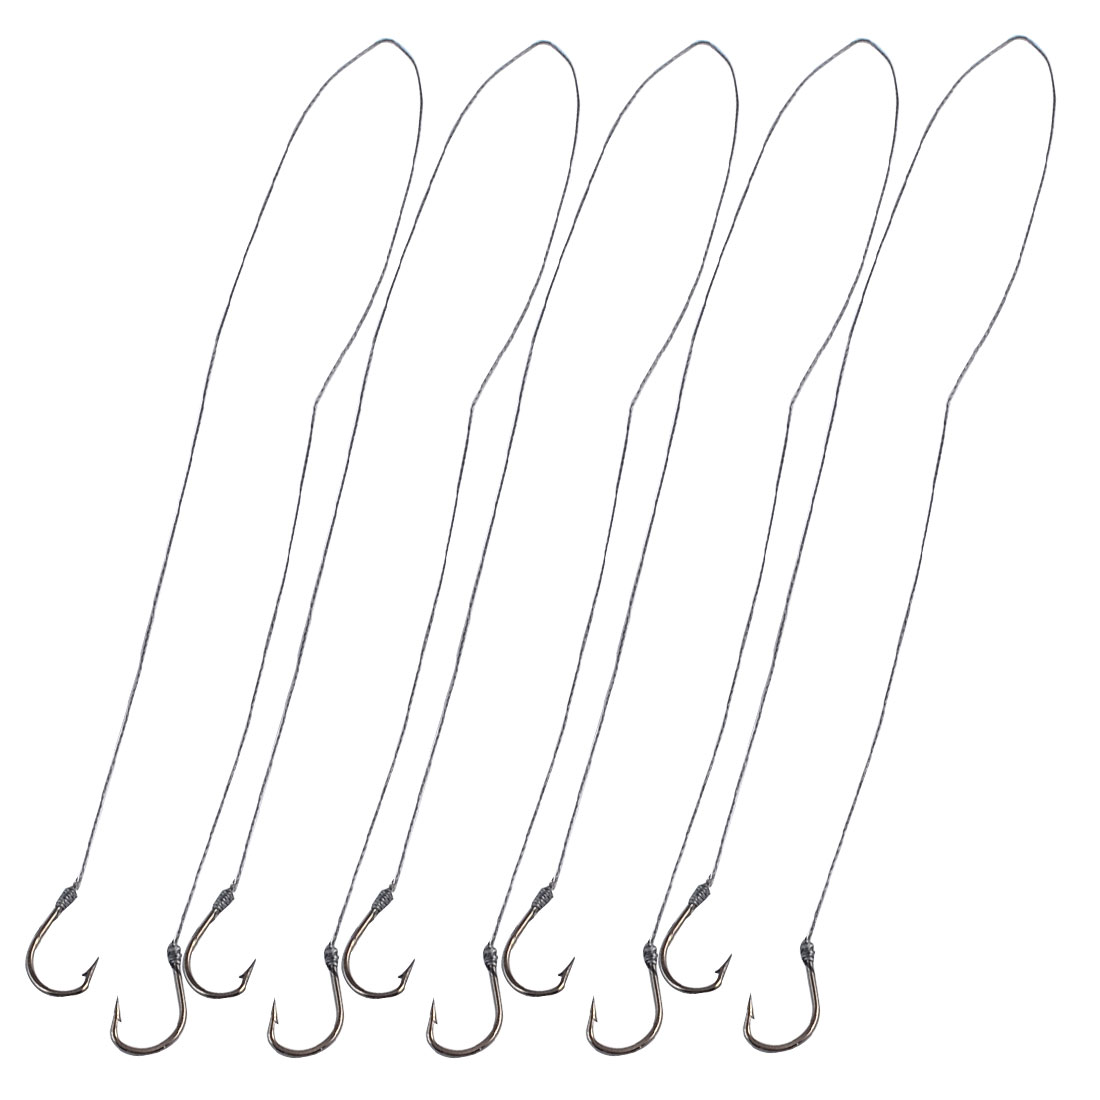 Size 6 Gray Fishing Tackle Mini Metal Barb Fishing Hooks 5 Pairs